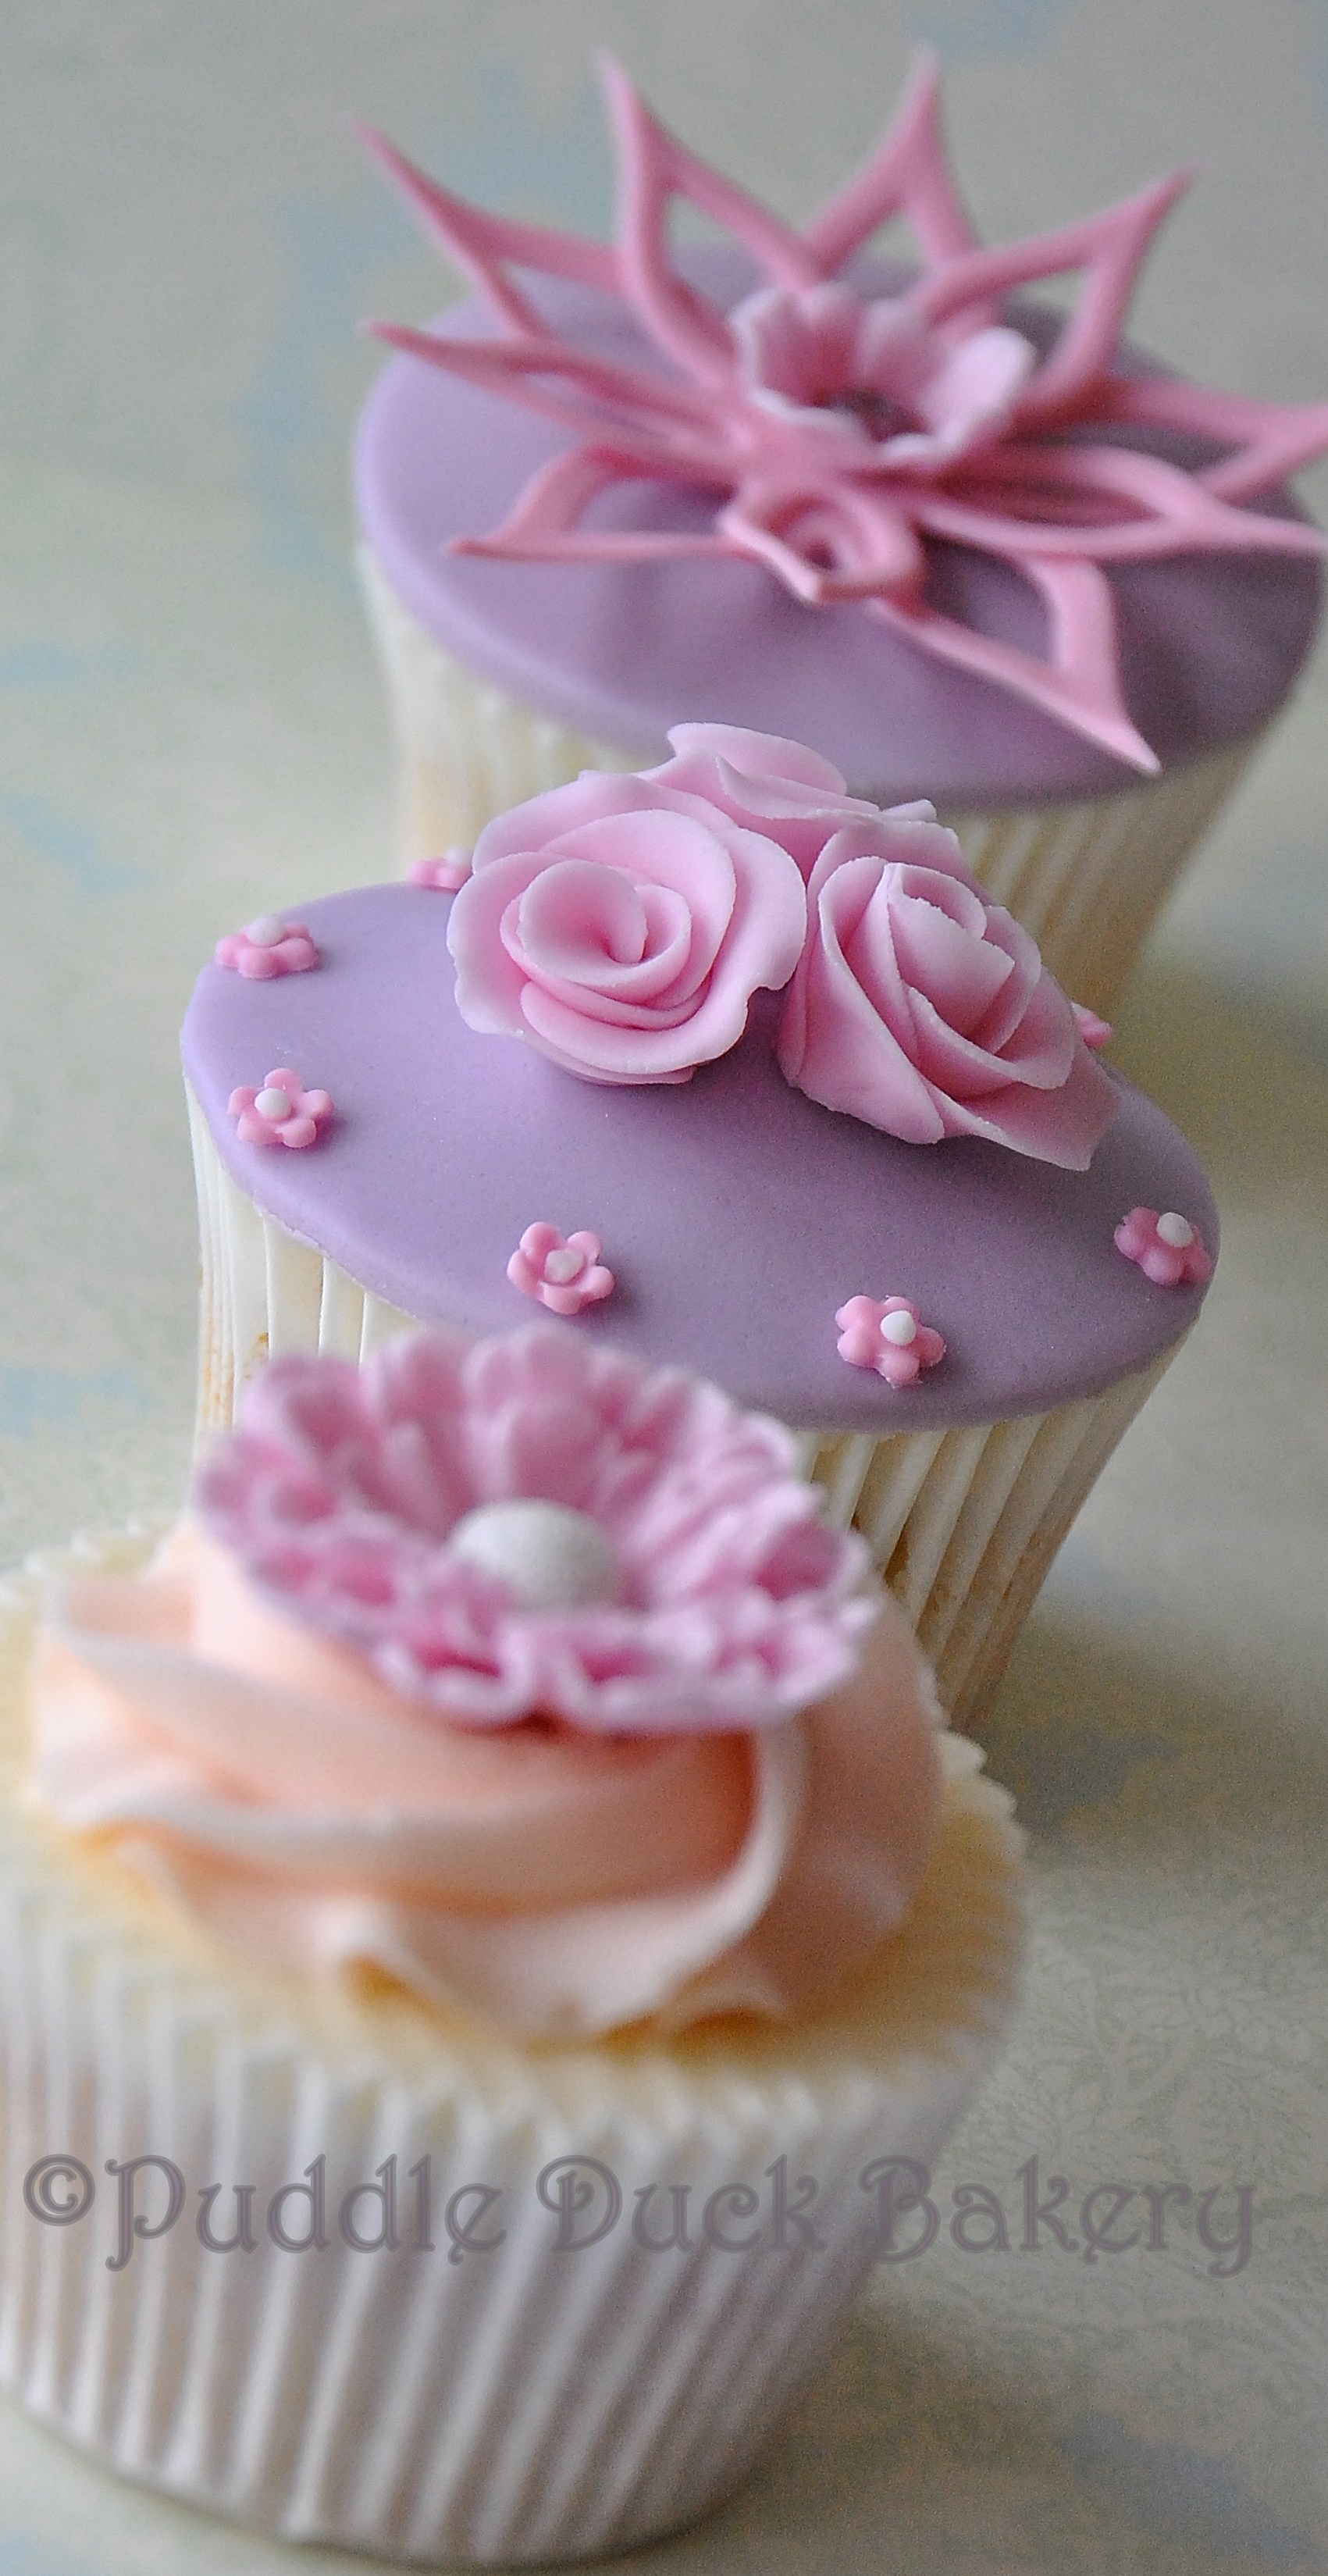 Beautiful flowers on a cupcake